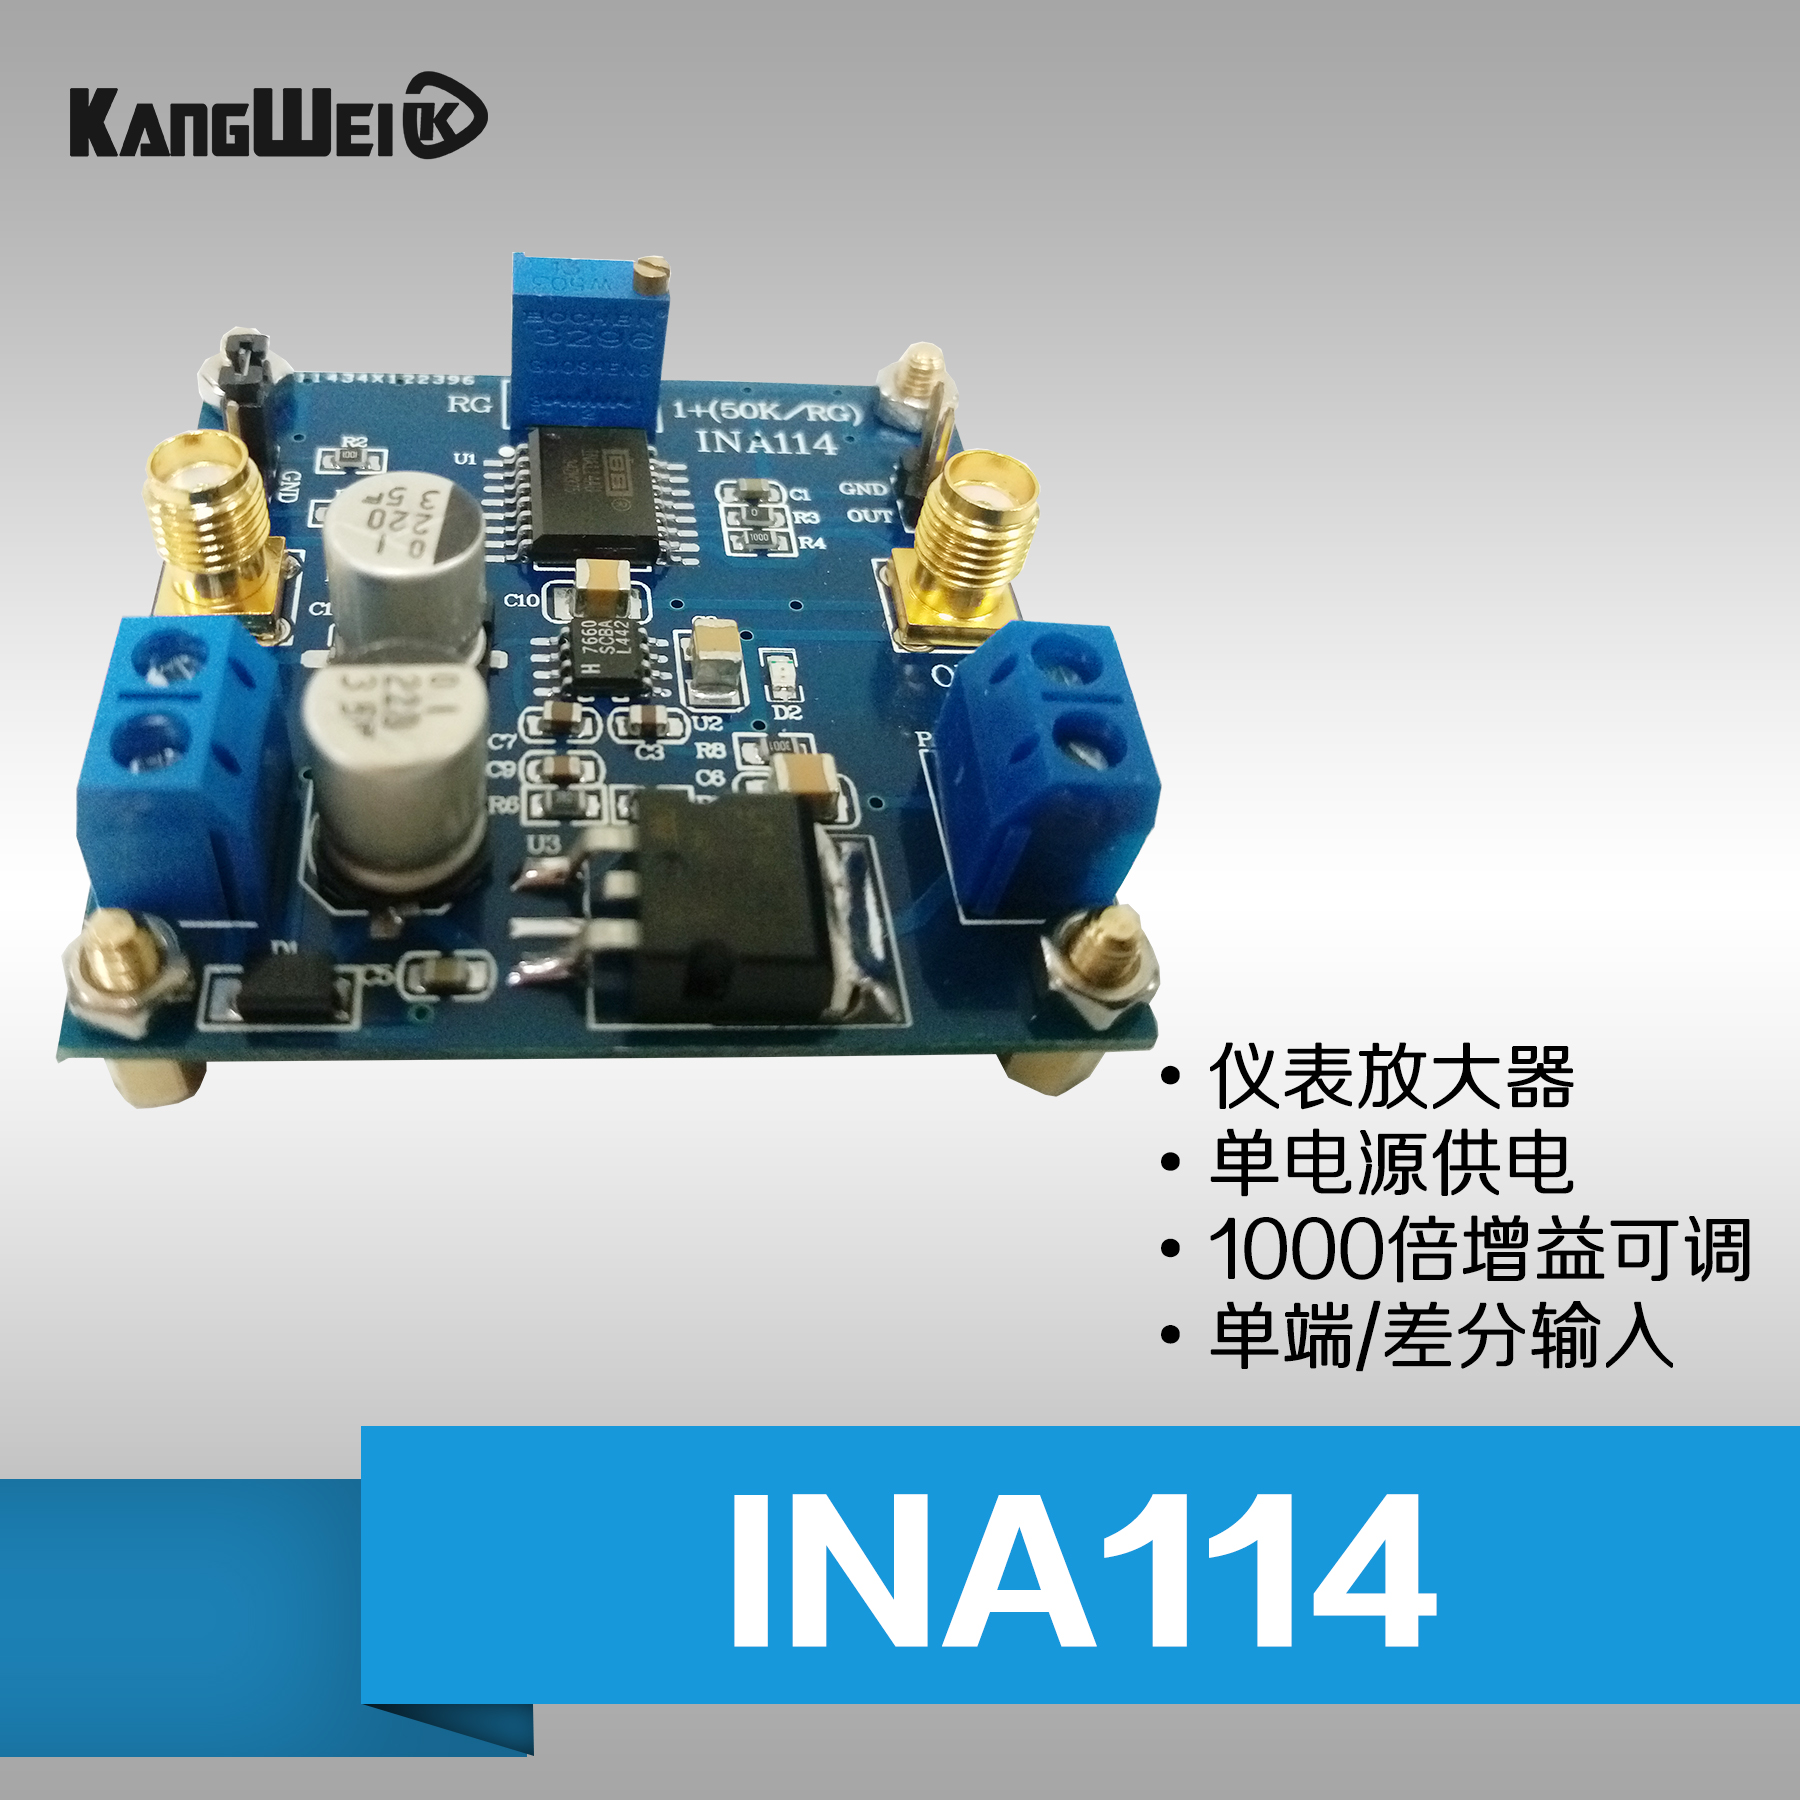 INA114 Meter Amplifier 1000 Times Gain Adjustable Single Power Supply Single Ended / Differential Input ina treasure 60g x20